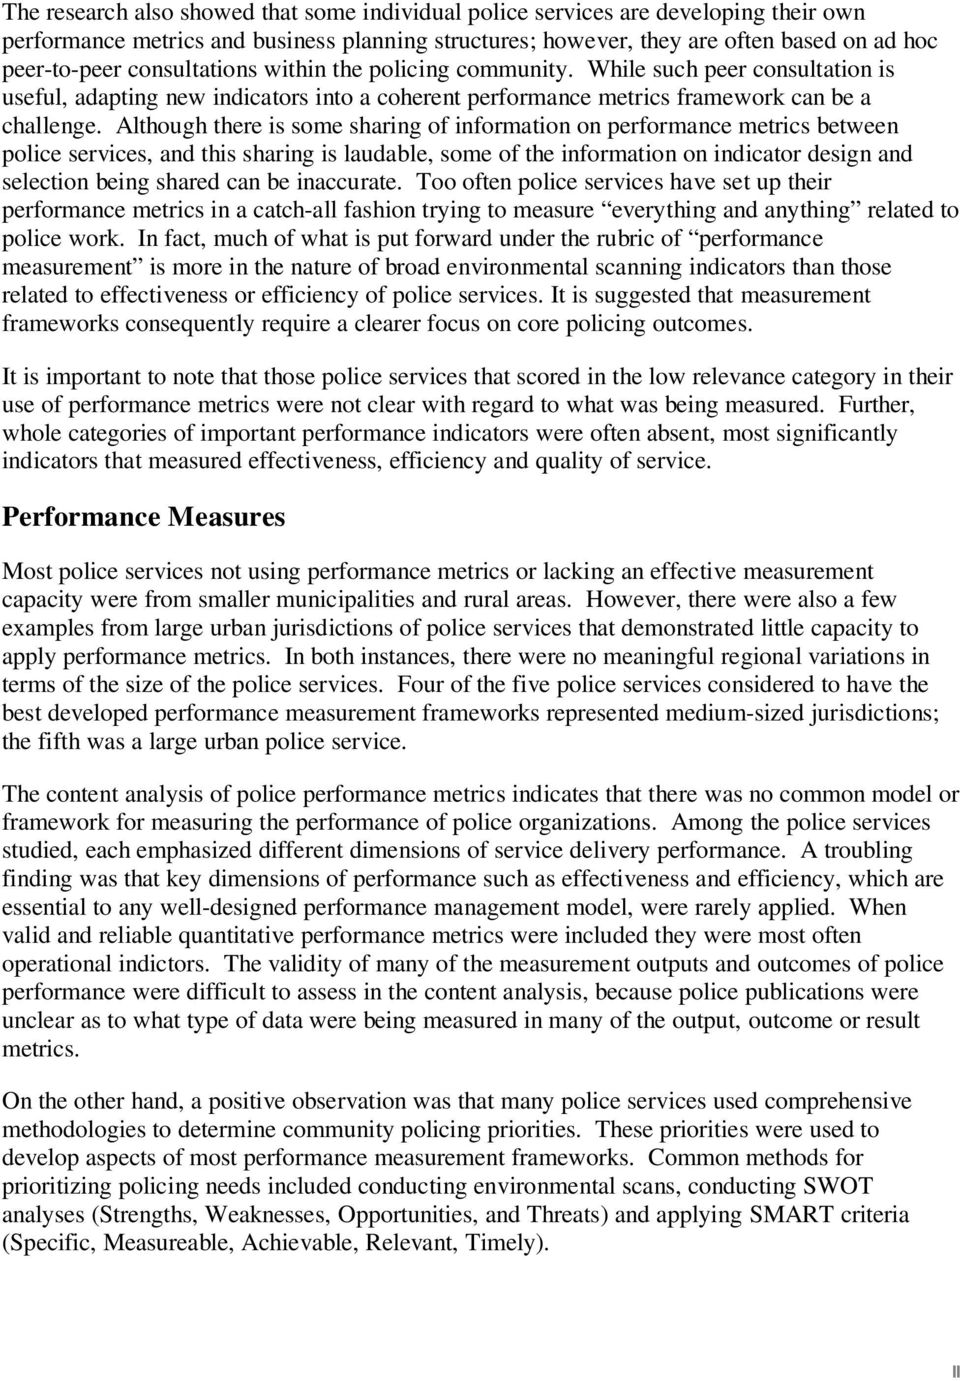 Although there is some sharing of information on performance metrics between police services, and this sharing is laudable, some of the information on indicator design and selection being shared can